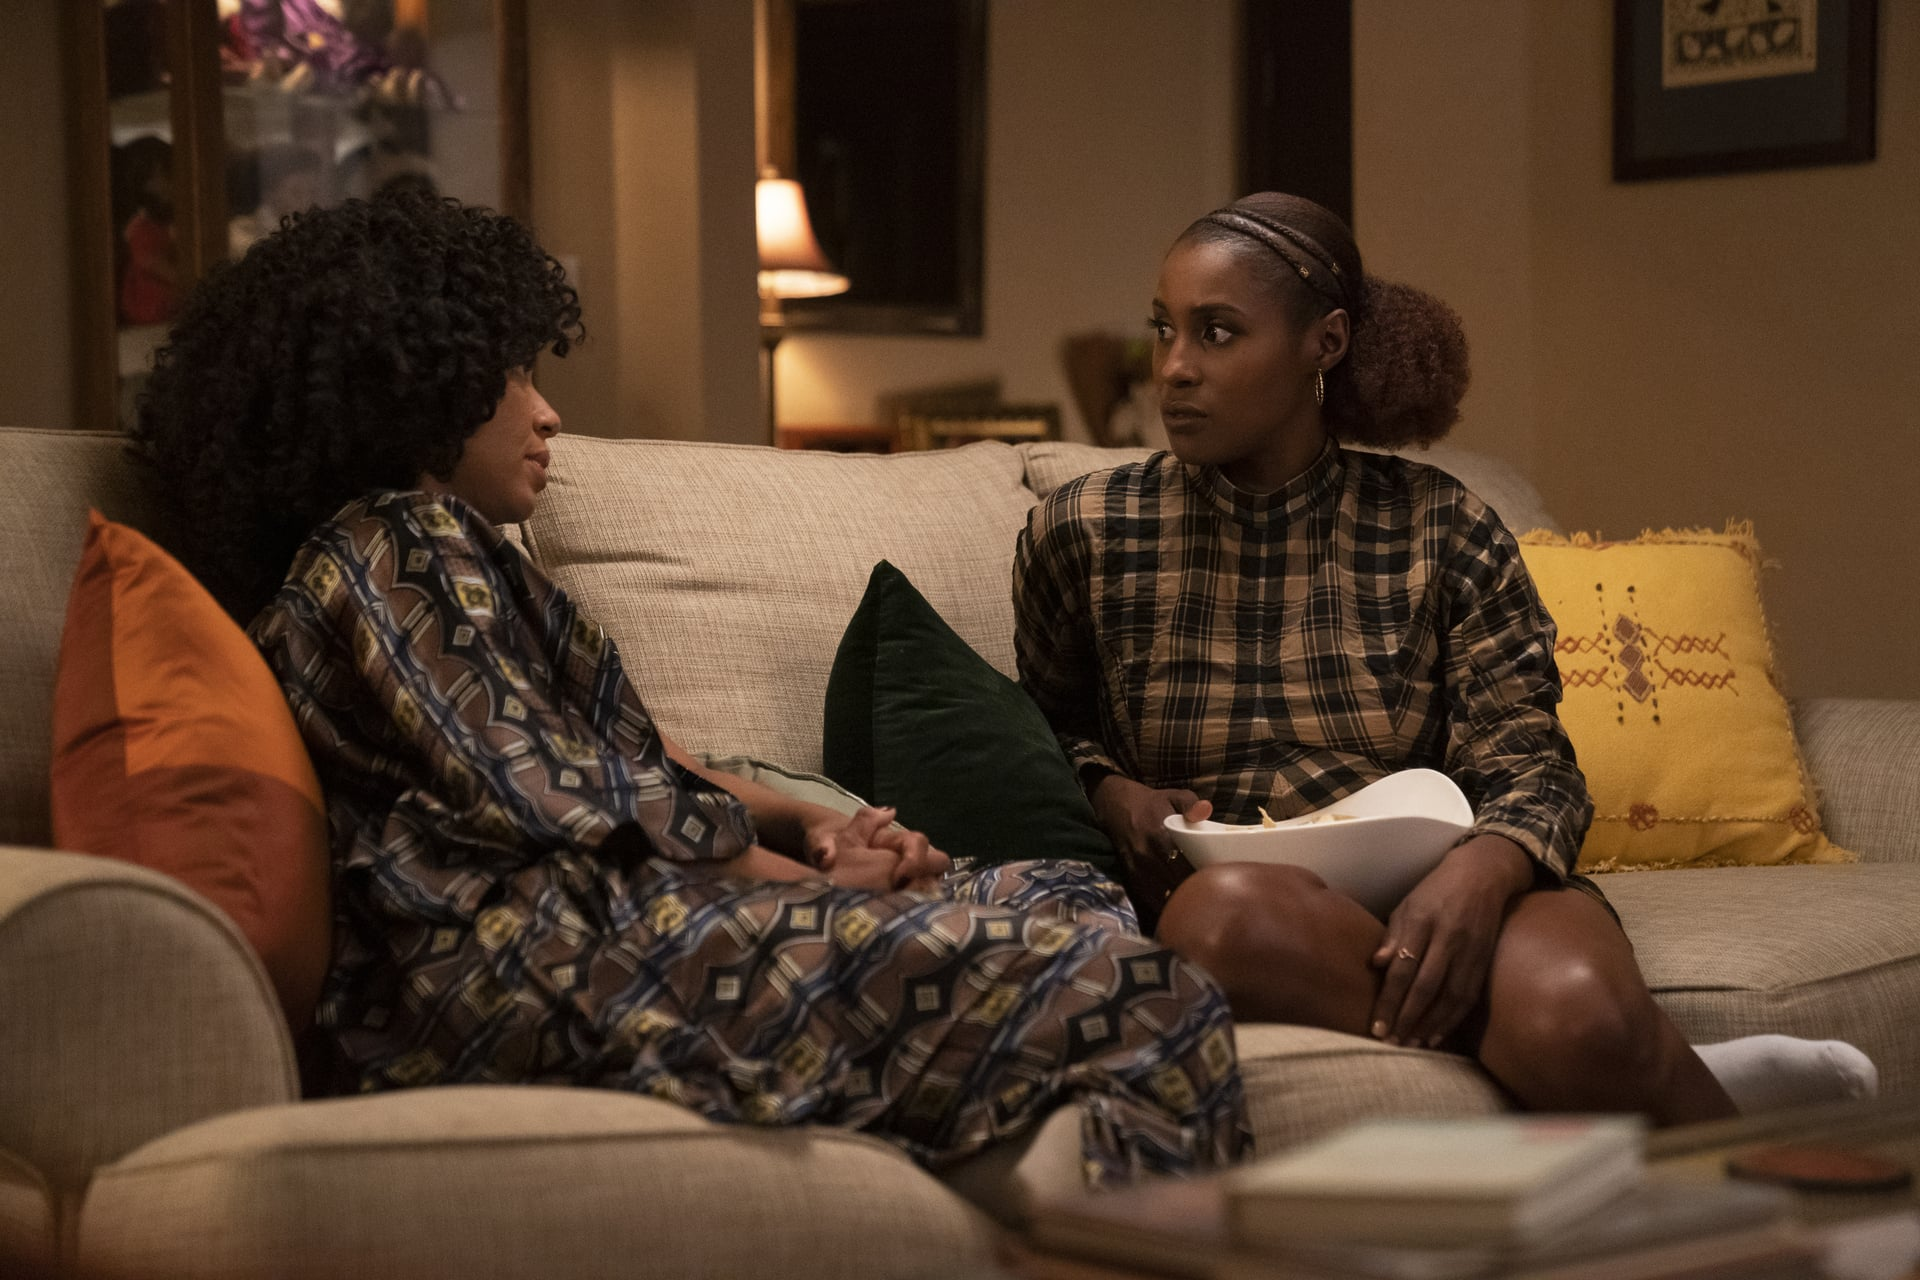 Music-From-Insecure-Season-4-Episode-6-Lowkey-Done